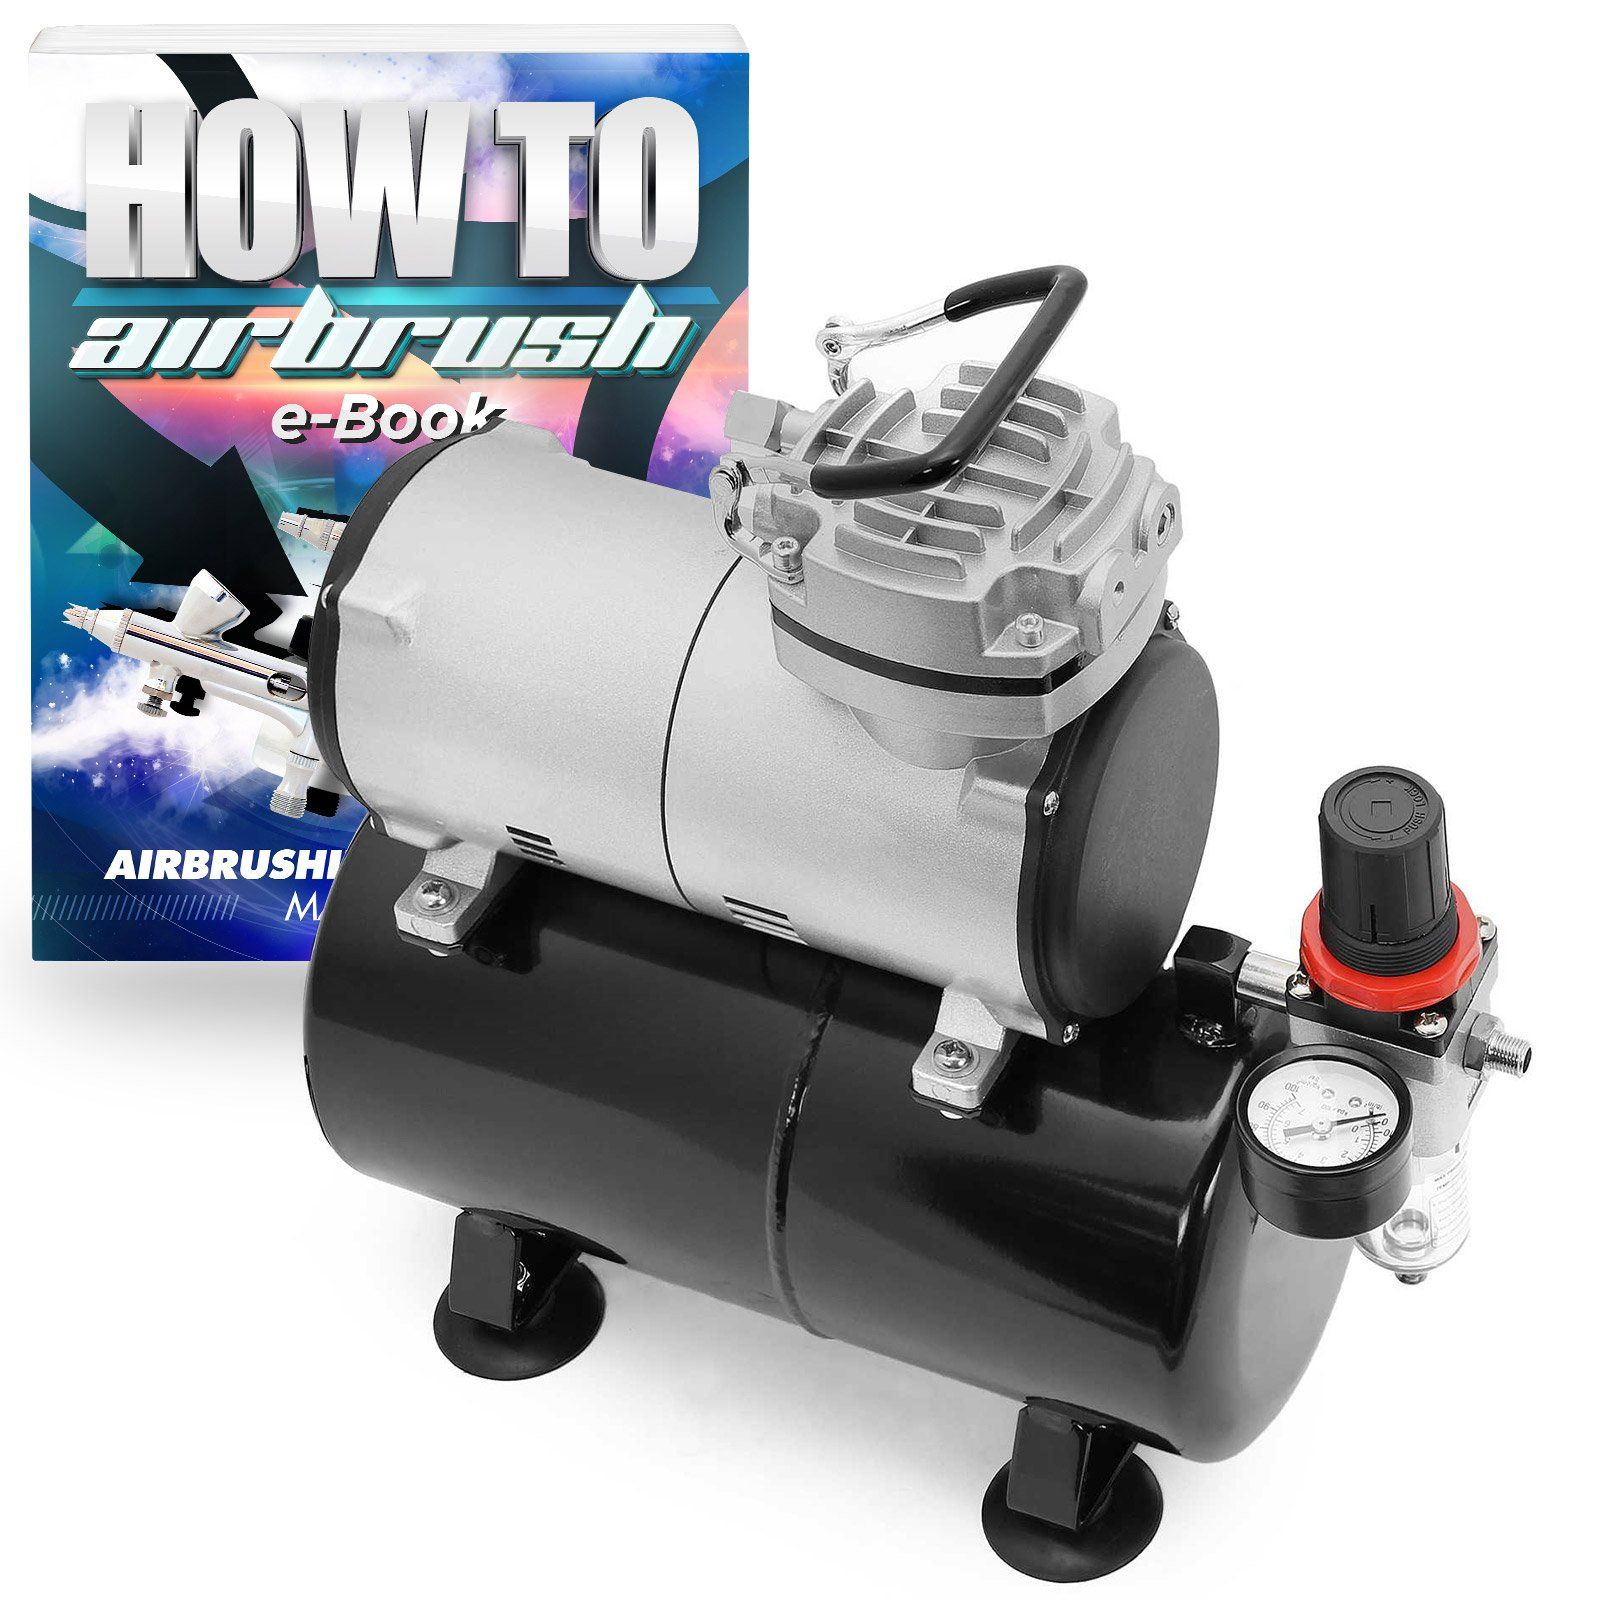 1/5 HP Airbrush Compressor Portable Quiet Hobby Oilless